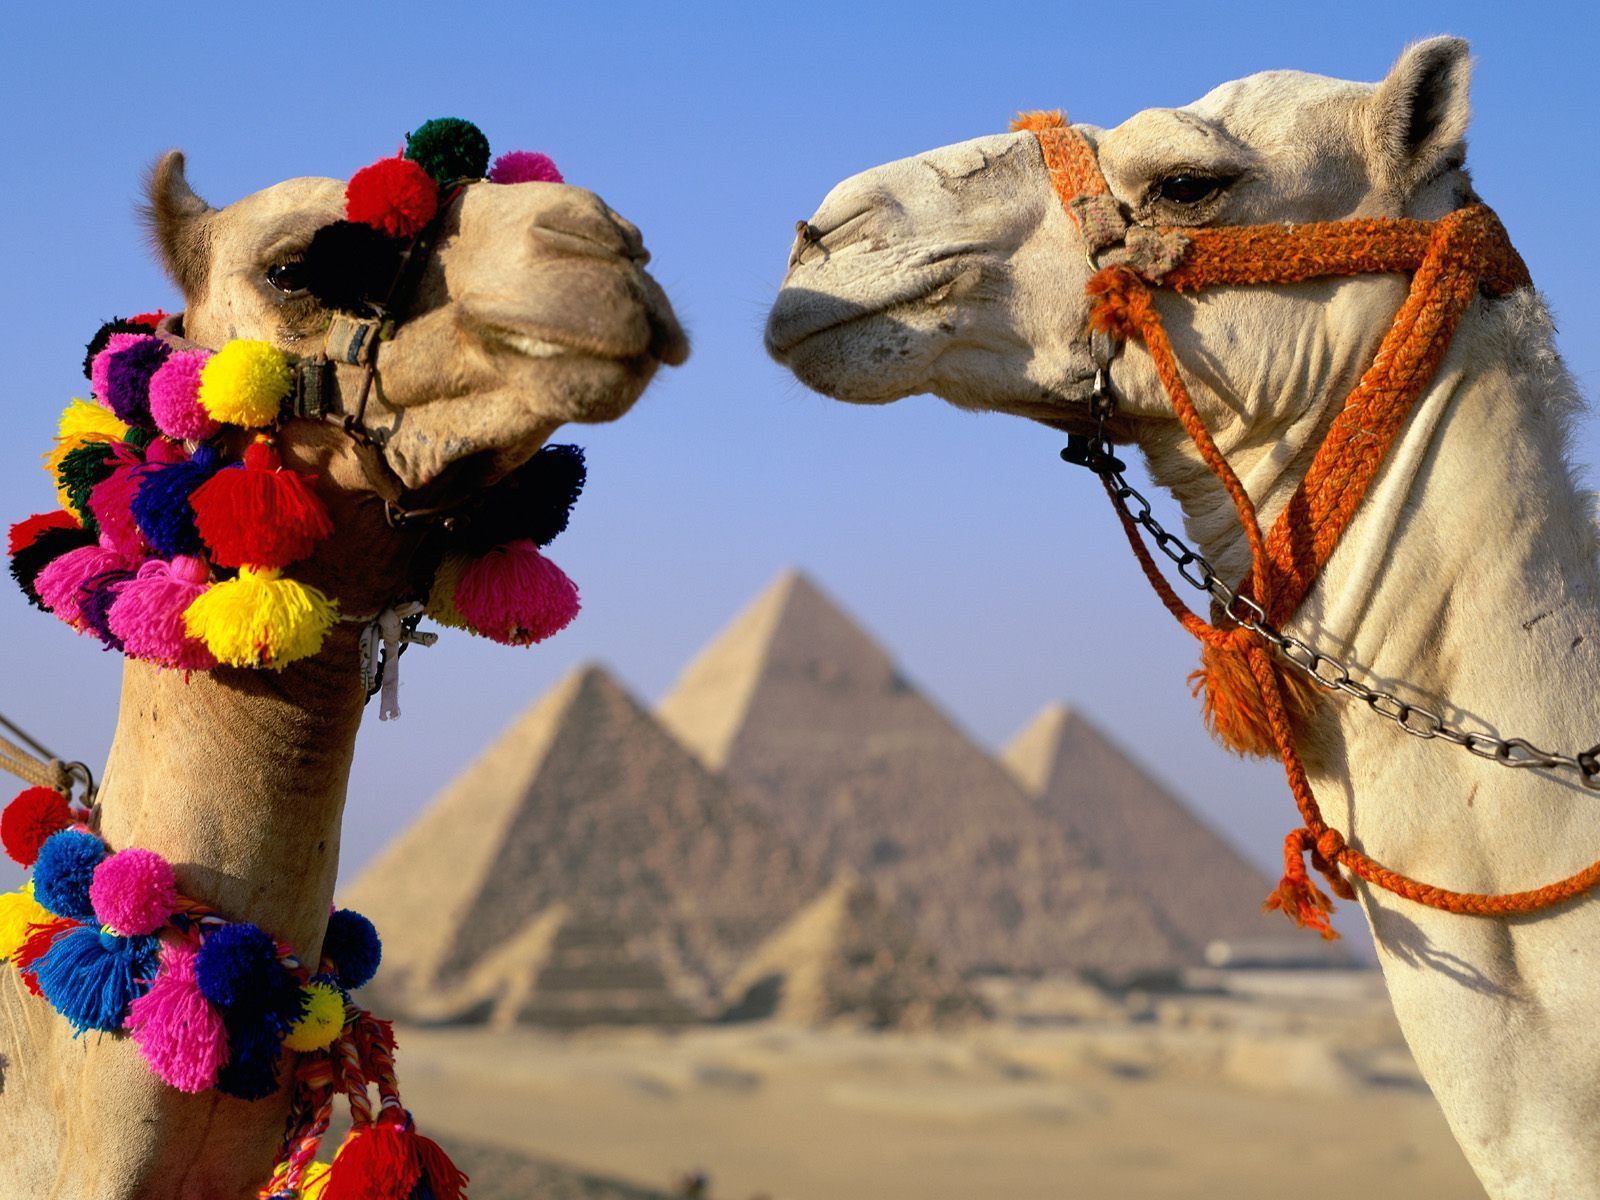 Pyramid Scheme: One camel has plans to party later on